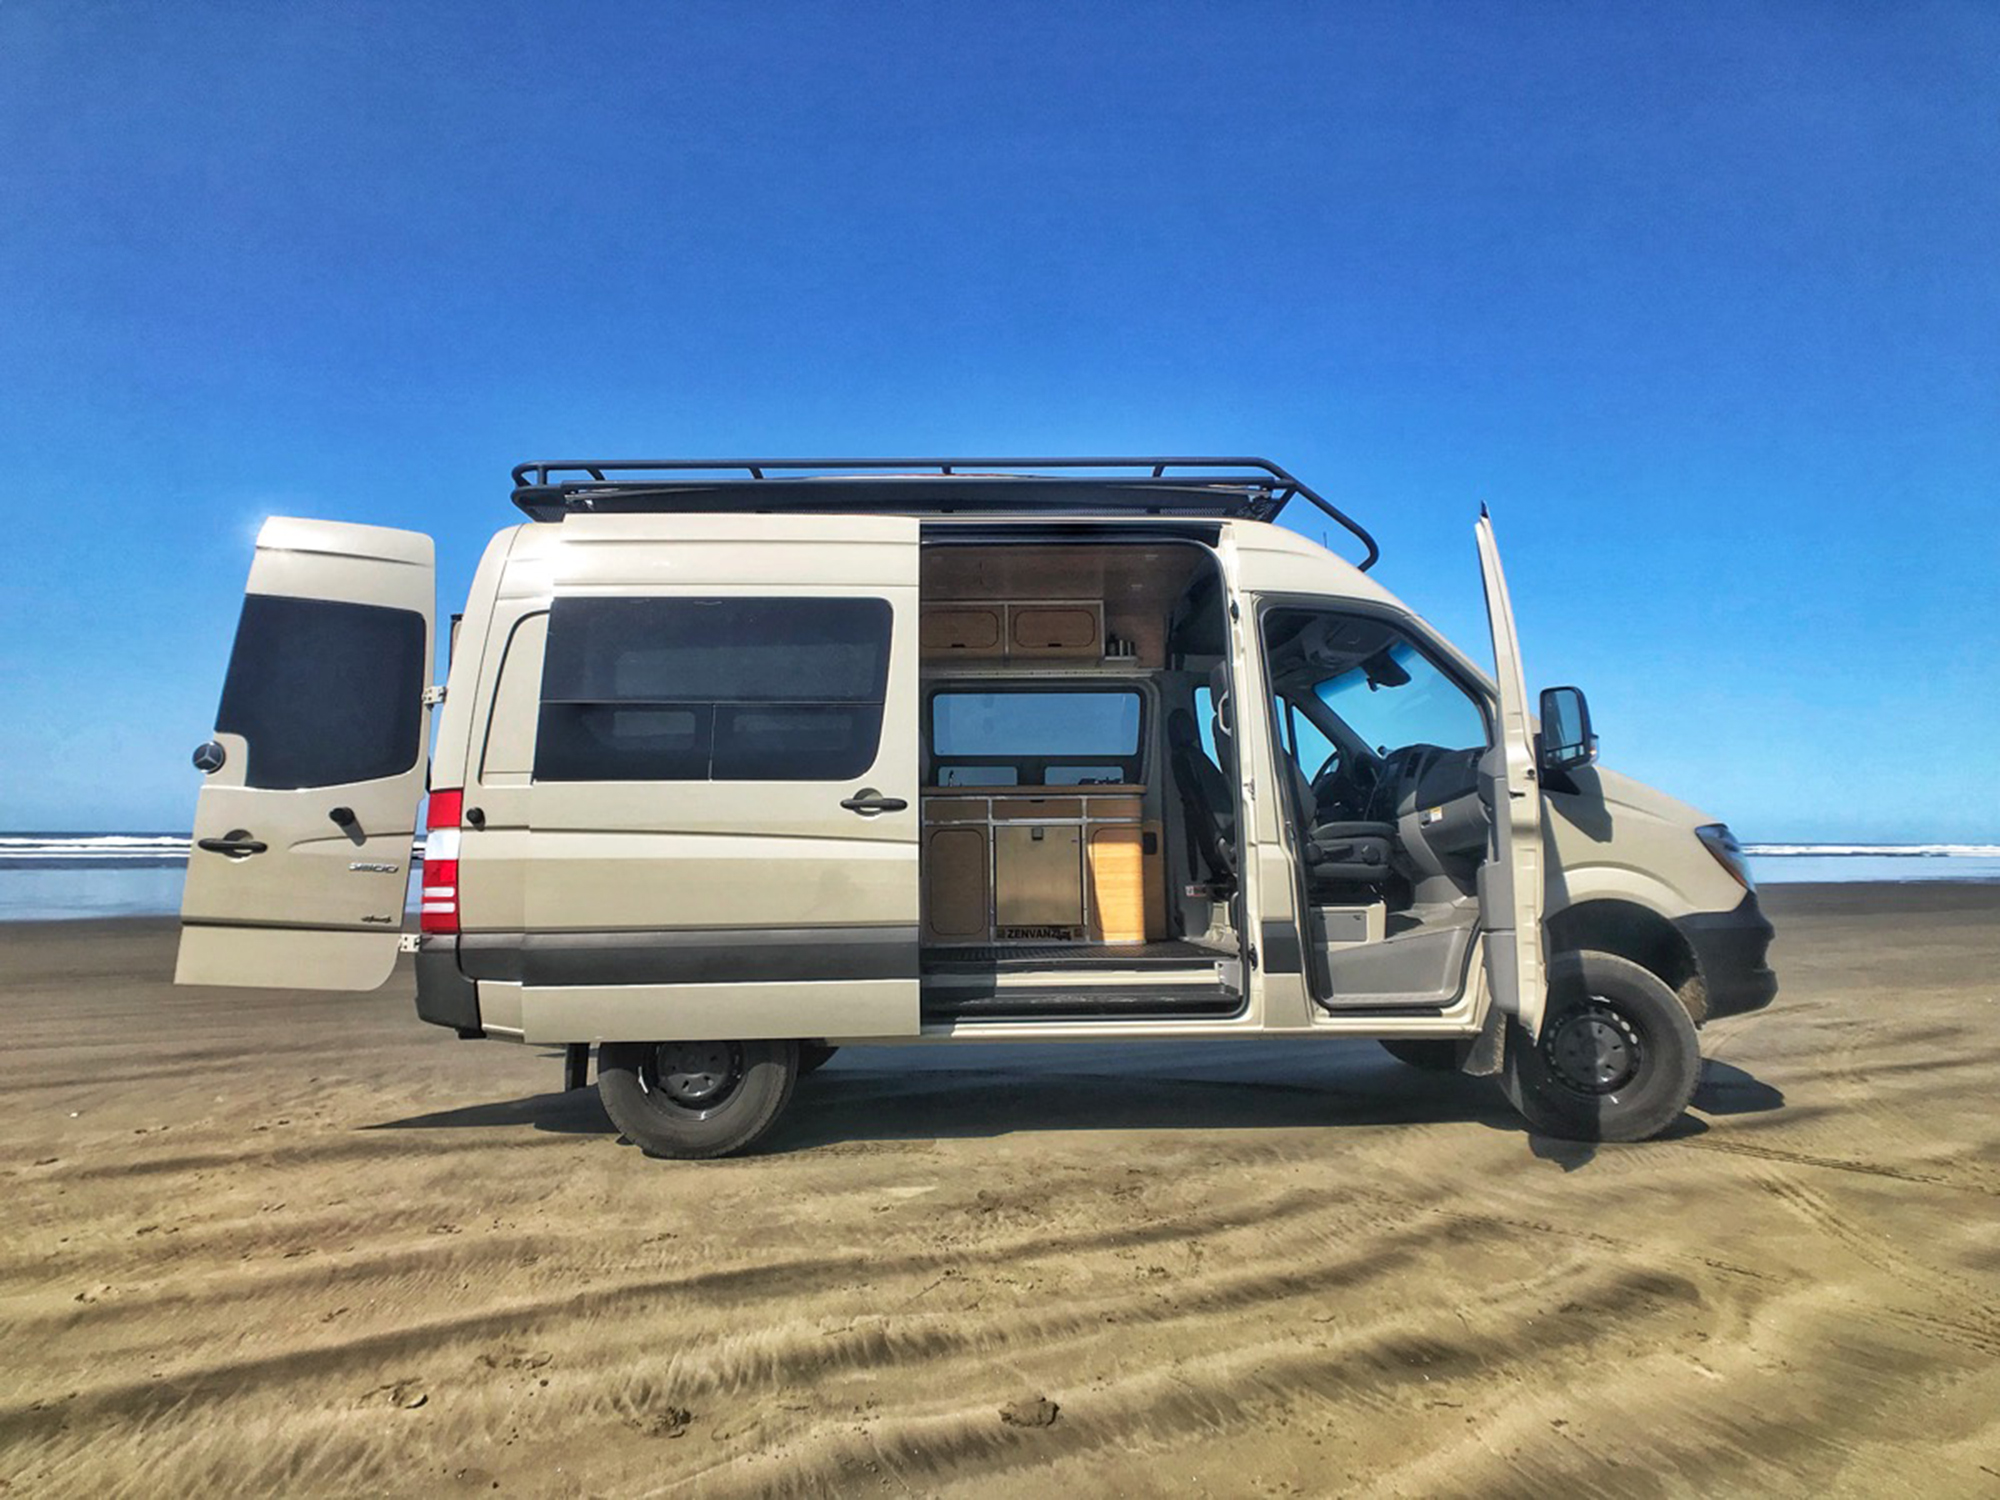 A tan van parked in sand. The doors of the van are open revealing an interior that has a kitchenette.